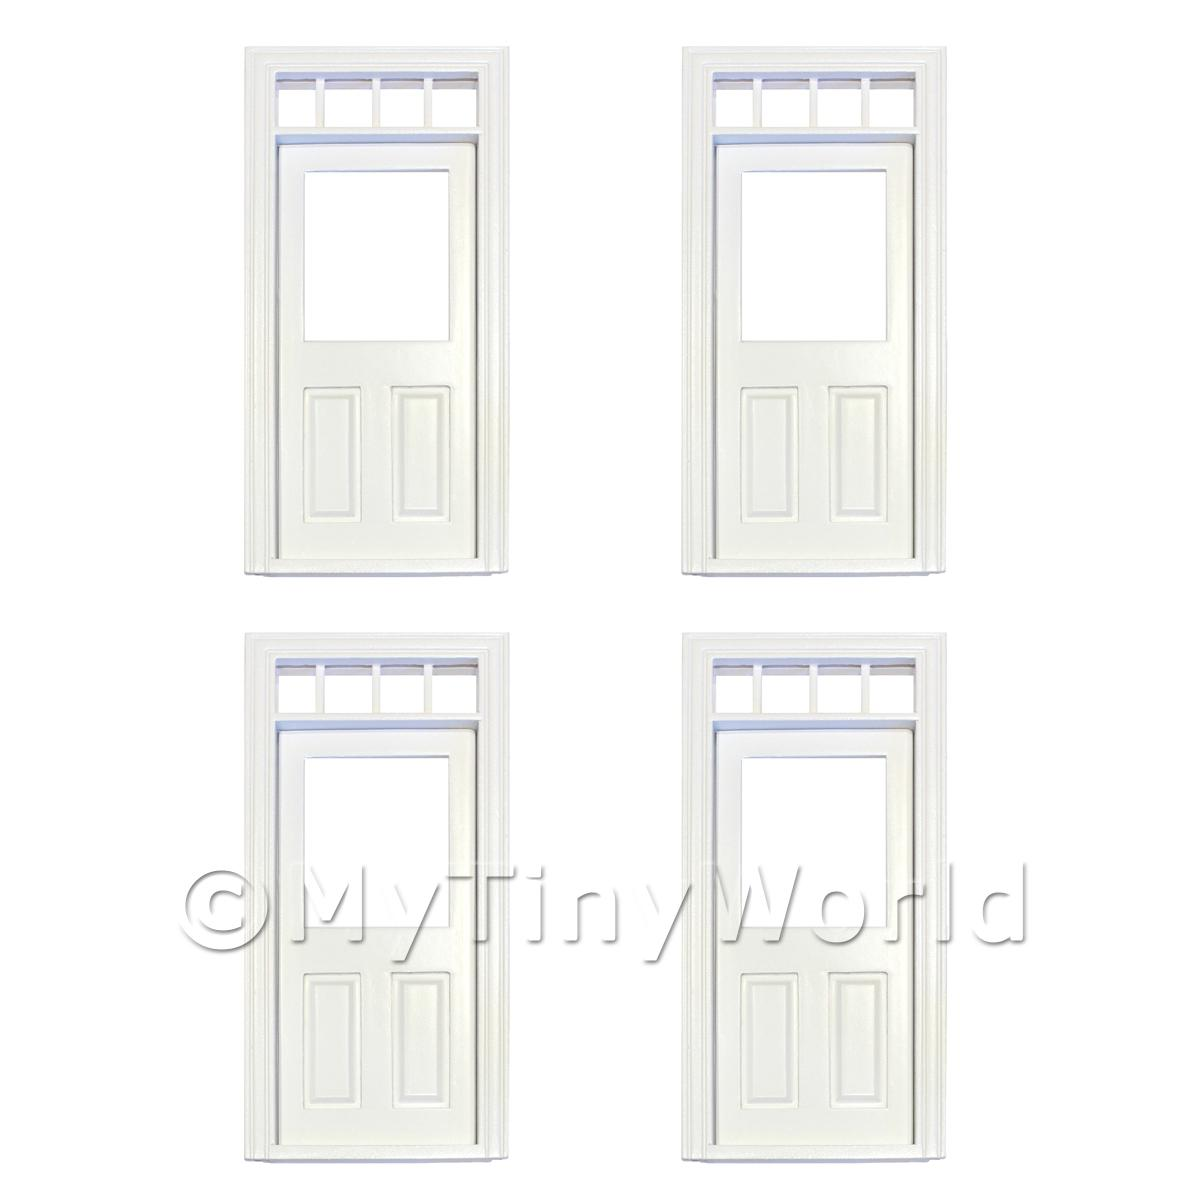 Dolls House Miniature  | 4 x Dolls House Decorative White Door With Glazed Pane And 4 Open Panes